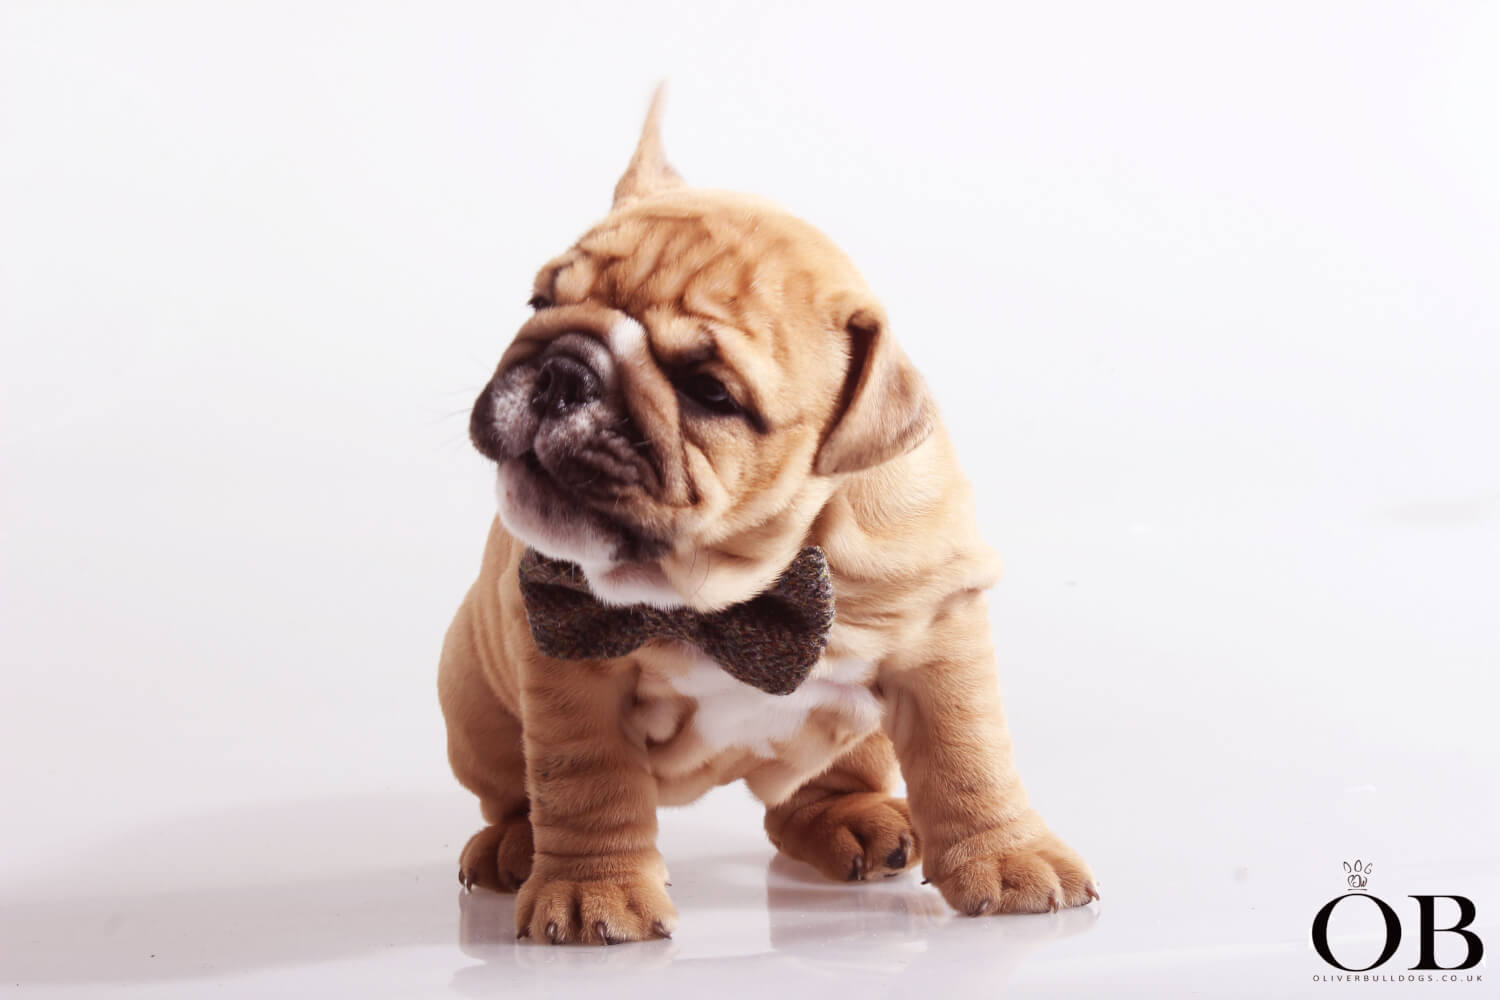 Ob british bulldog puppy